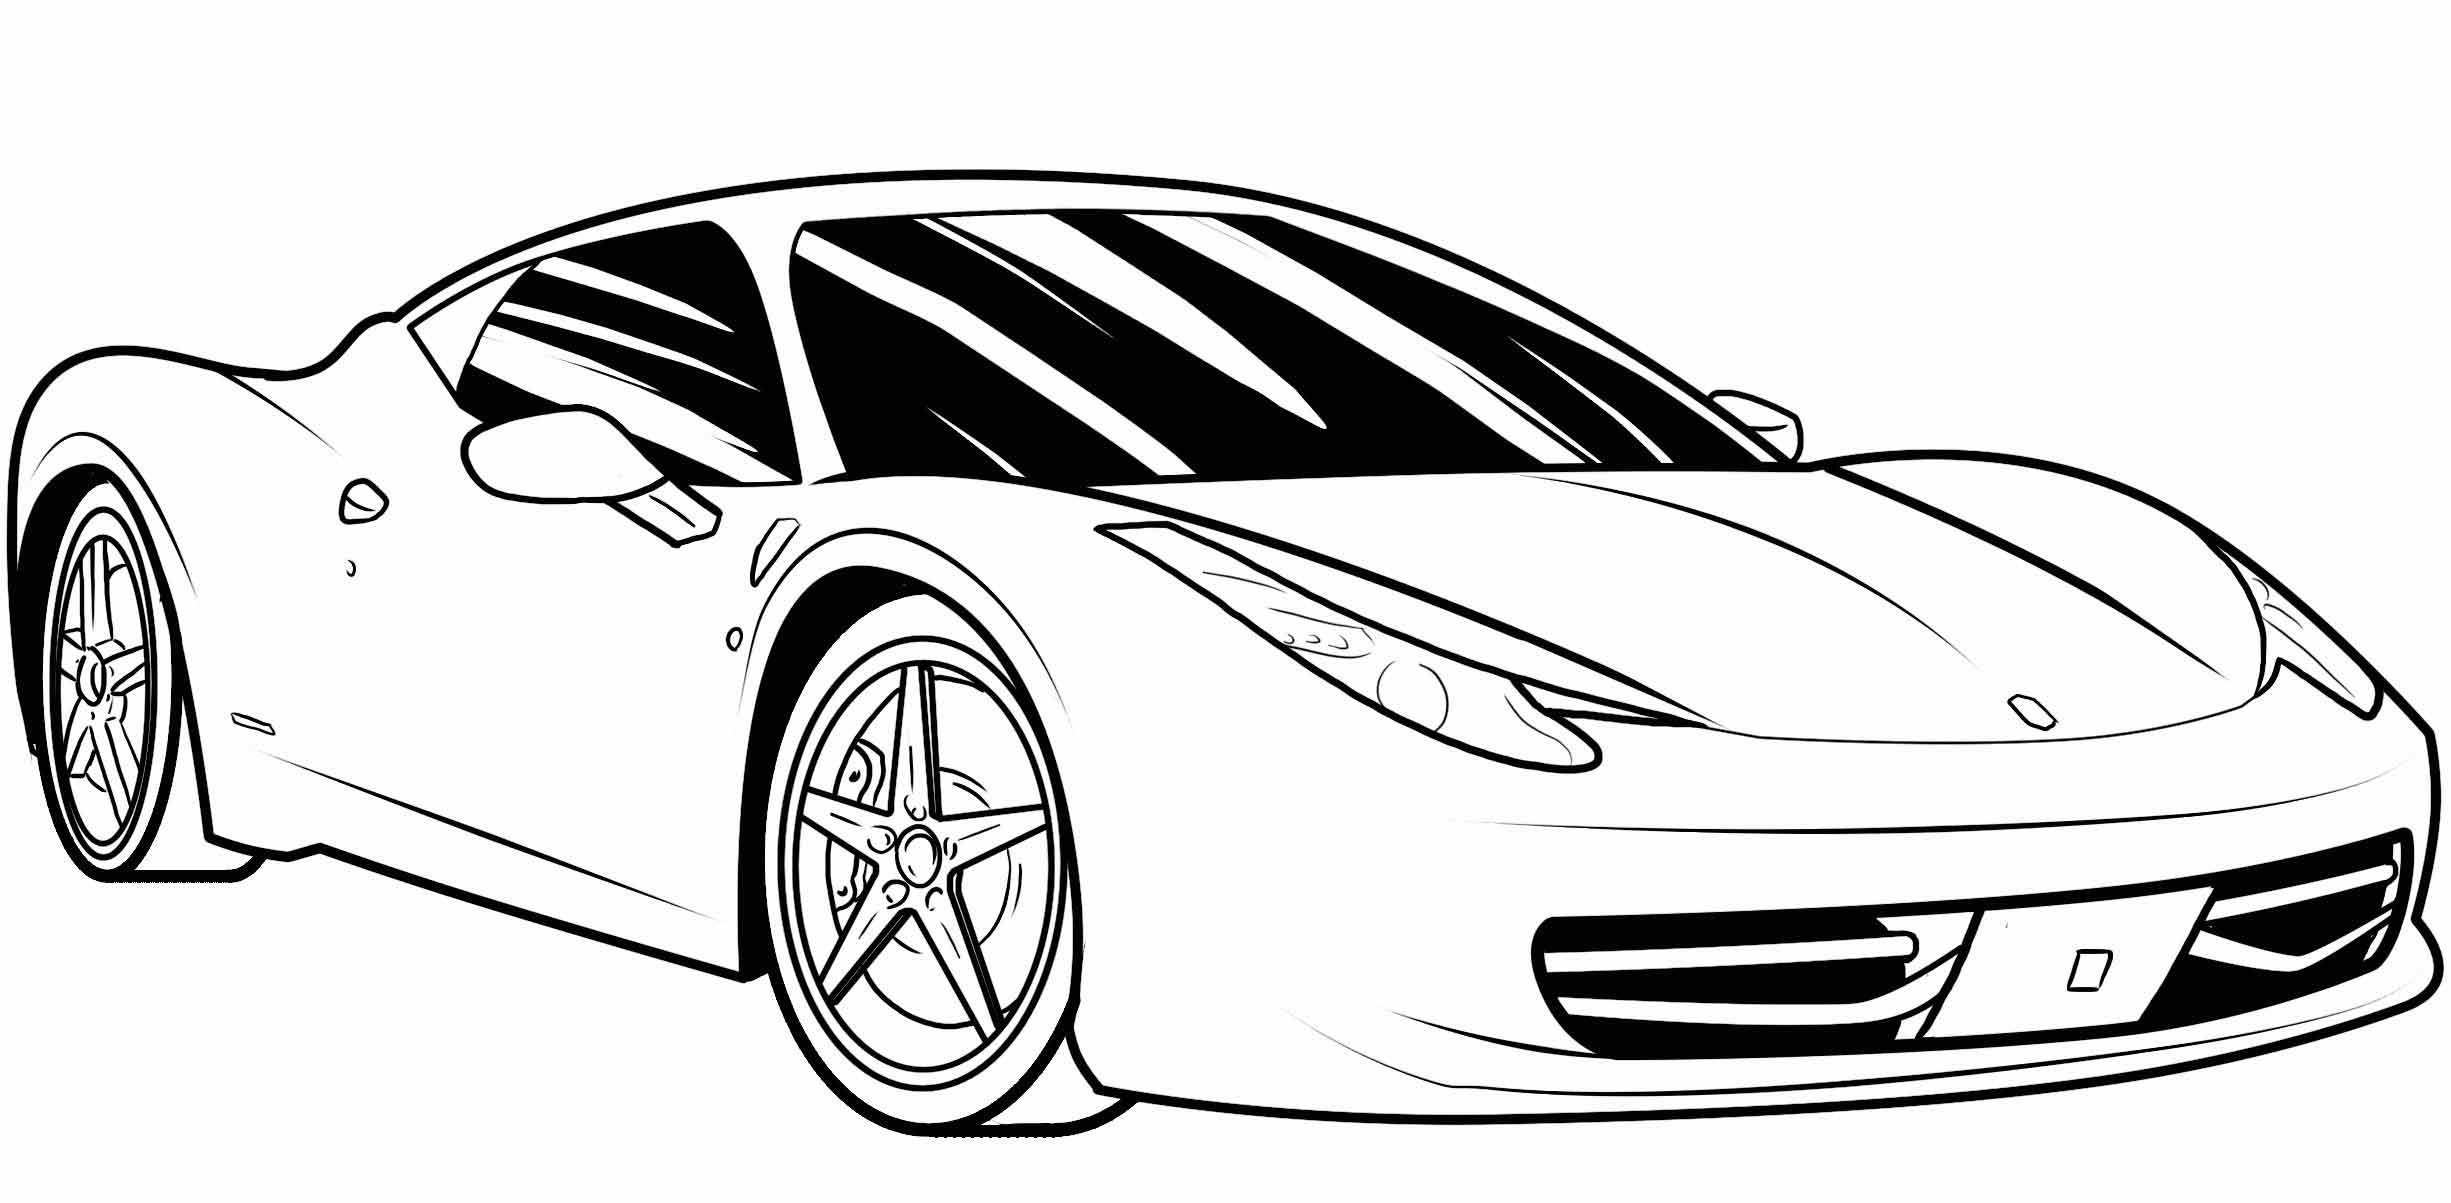 coloring pages for boys cars race car coloring pages free download on clipartmag boys pages coloring for cars